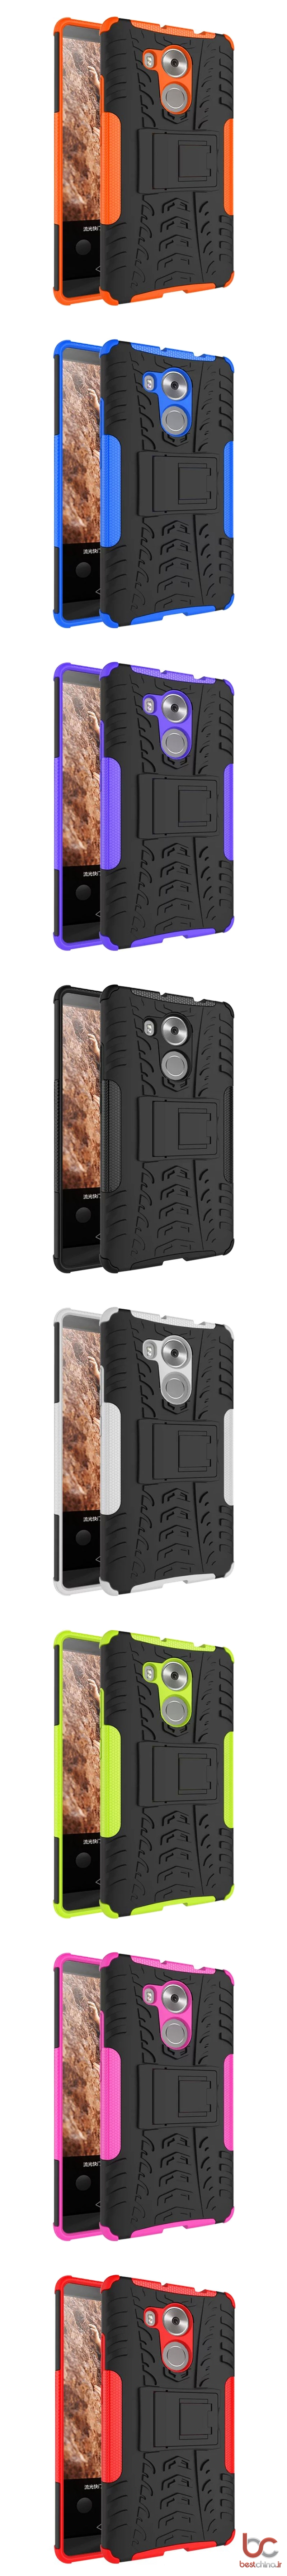 Huawei Mate 8 Armor Back Cover (2)